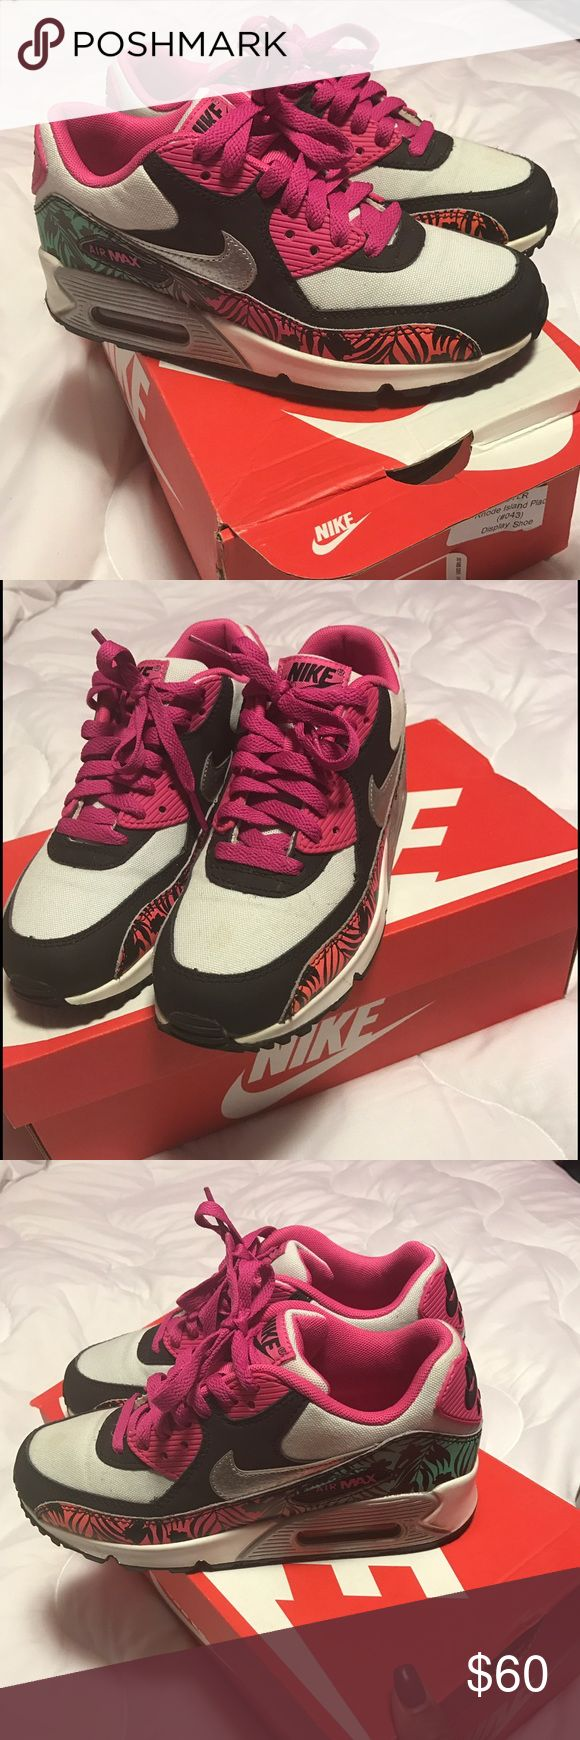 Air Max Sneakers size 4. Women 6 In New Condition Air Max Sneakers size. 4 boys women's size. 6. Sneakers in new Condition only worn twice. Air Max Shoes Sneakers